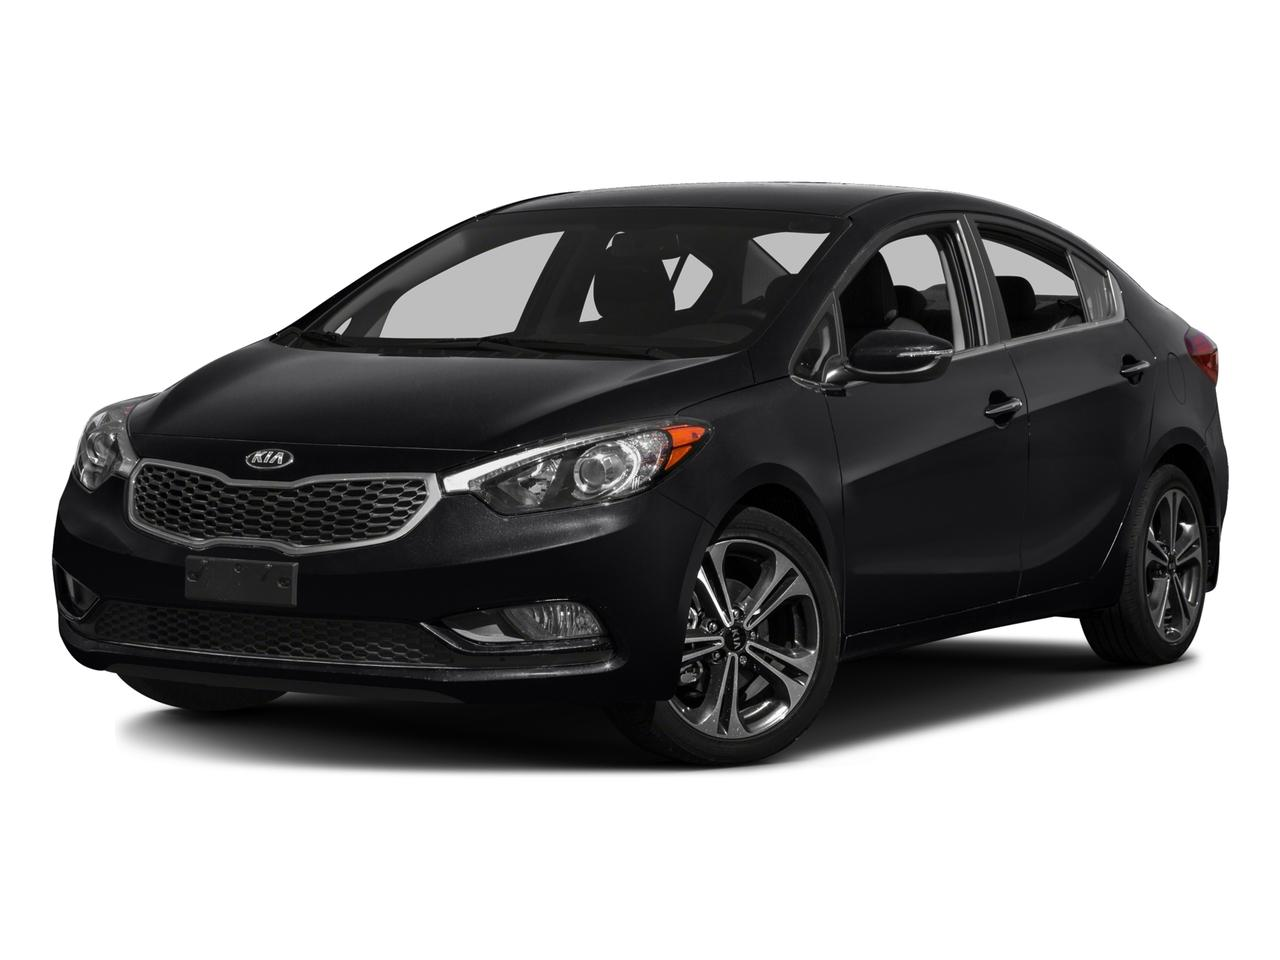 2016 Kia Forte Vehicle Photo in Pittsburgh, PA 15226